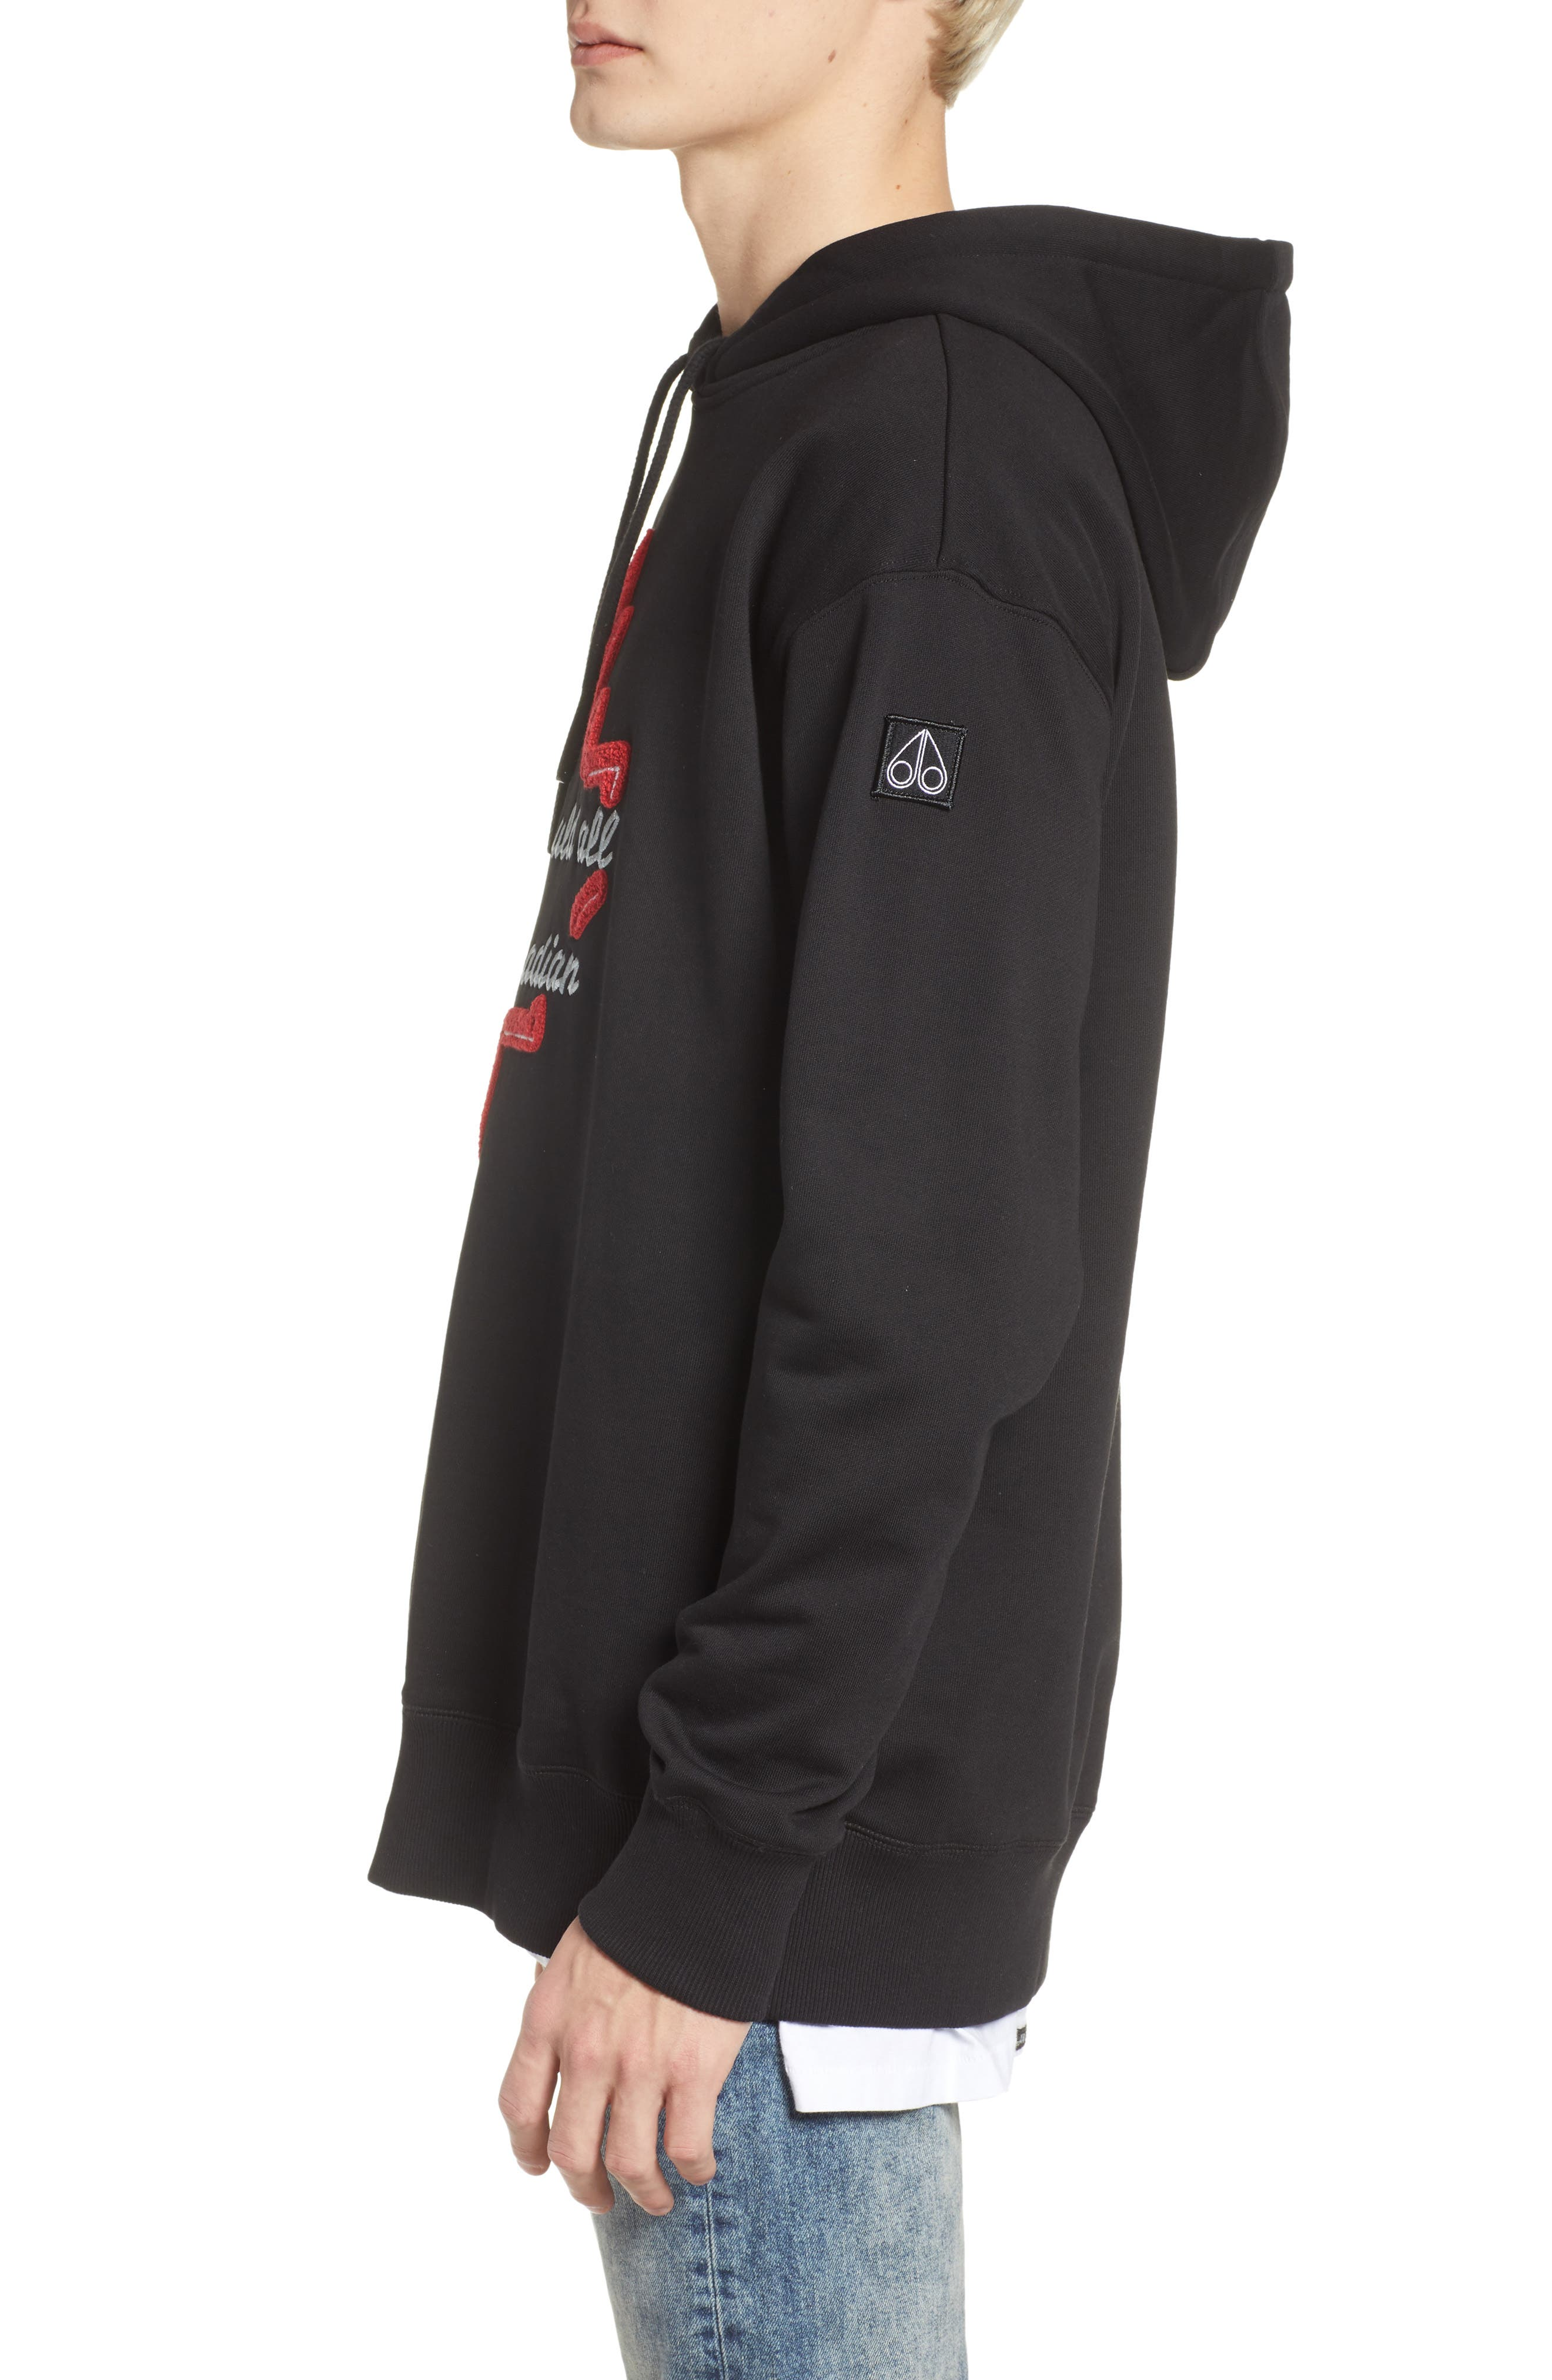 Northern Light Hoodie,                             Alternate thumbnail 3, color,                             001